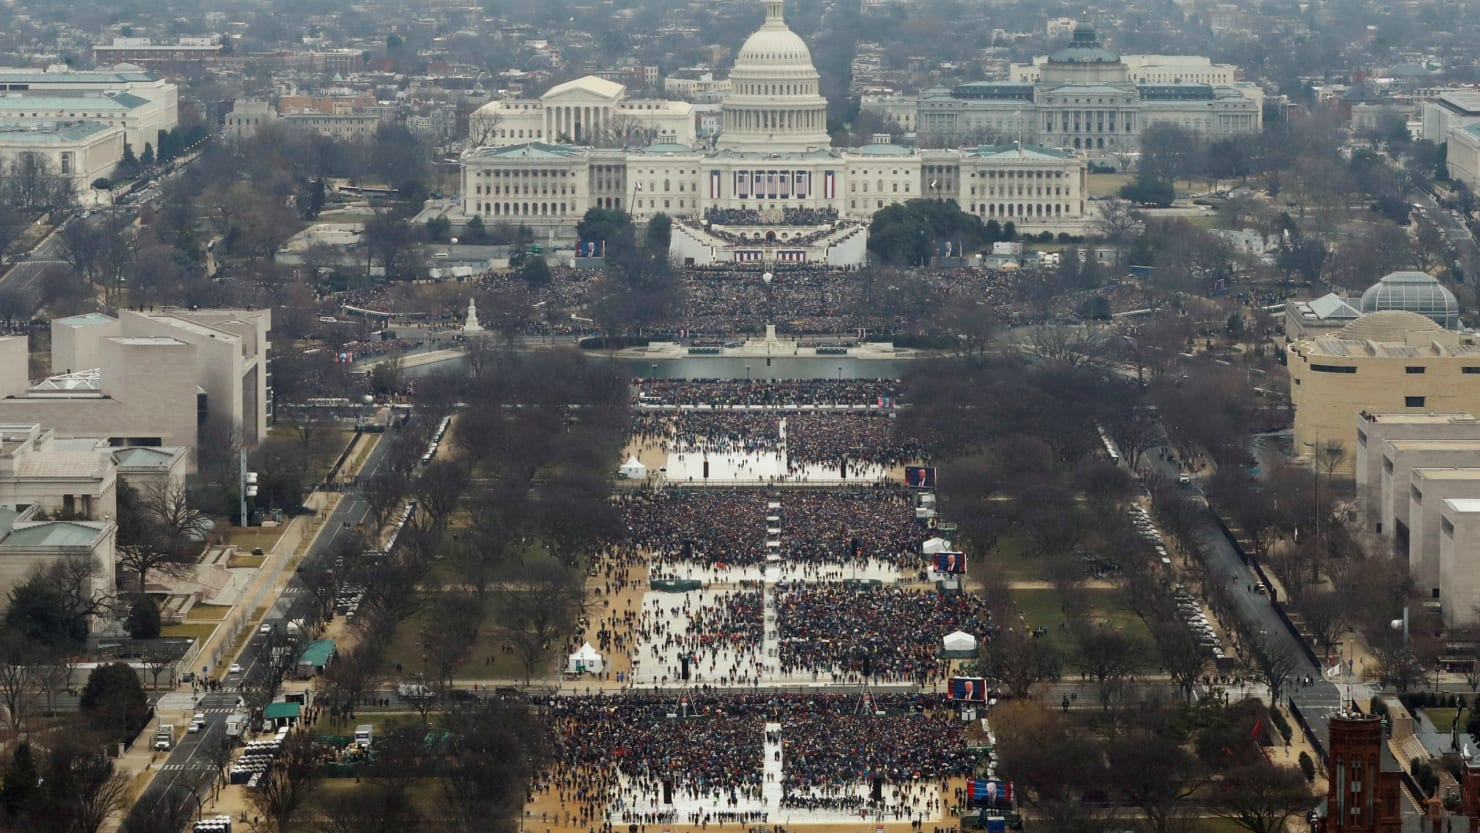 Government Photographer Edited Inauguration Pics to Make Crowd Look Bigger: Documents